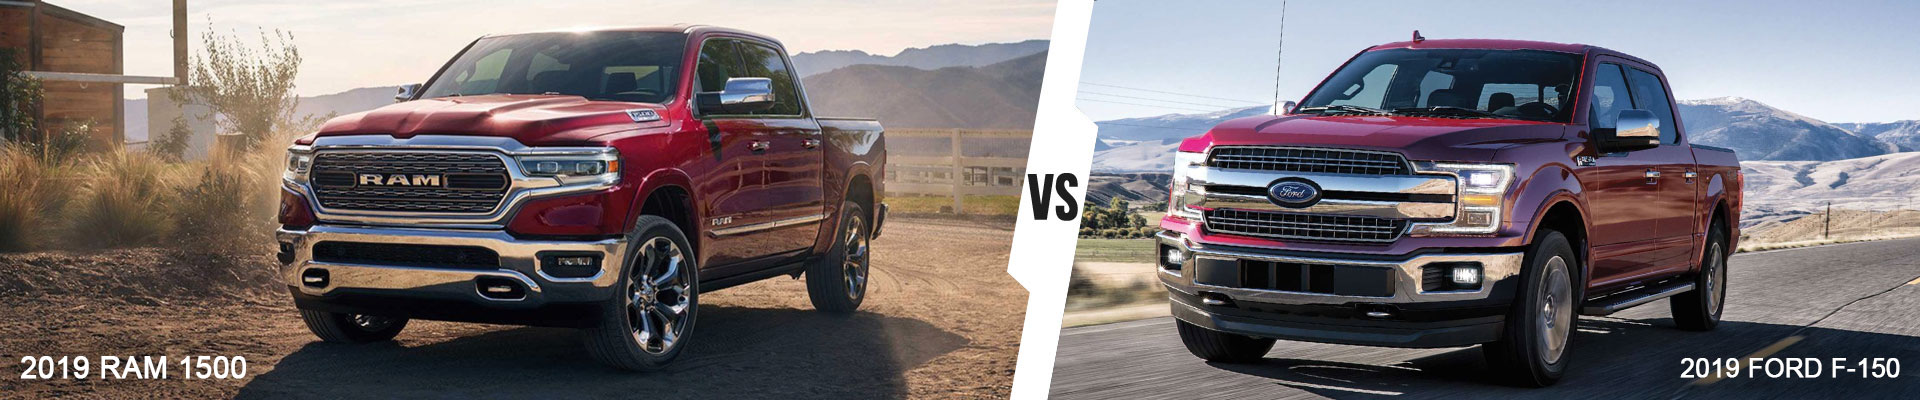 Comparing The 2019 Ram 1500 Pickup To The 2019 Ford F-150 Pickup